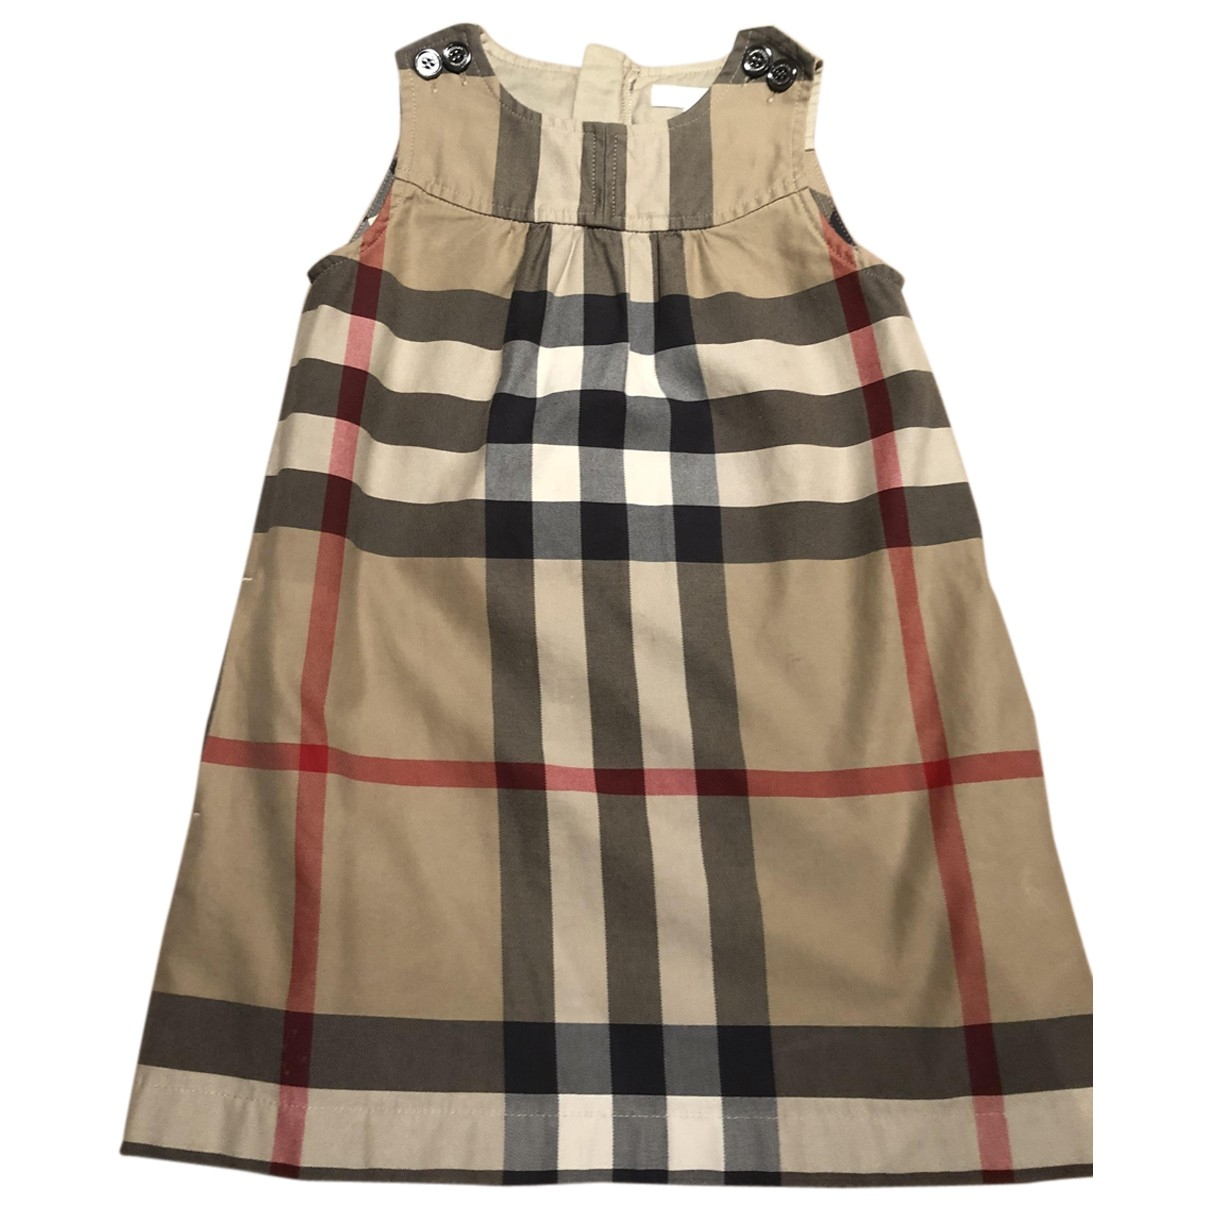 Burberry \N Beige Cotton dress for Kids 4 years - until 40 inches UK